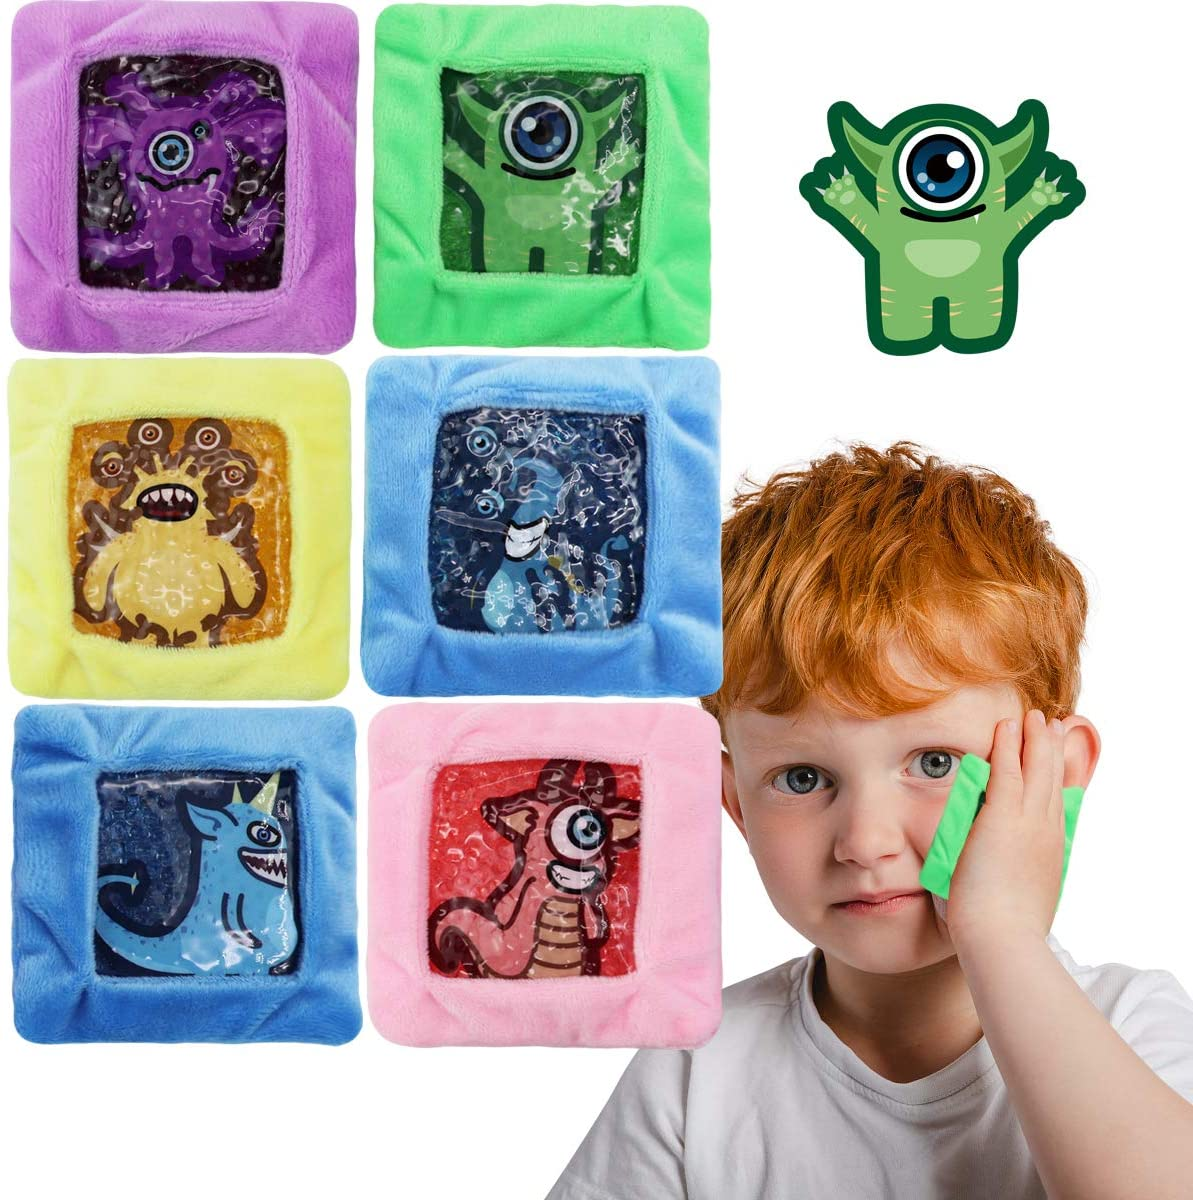 Kids Ice Pack, Hot or Cold Pack Gel Bead Cooling Pad, Reusable for Injuries Medical Health,Swelling and Pain Relief, Tired Eyes, Child Injury, Headache, Sinus Relief, 6 Pcs